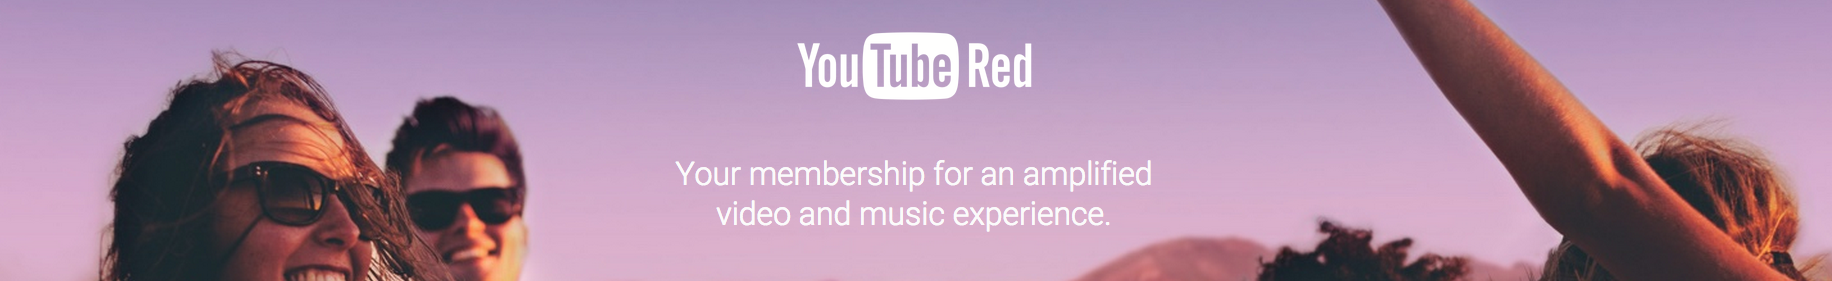 YOUTUBE RED PAGE